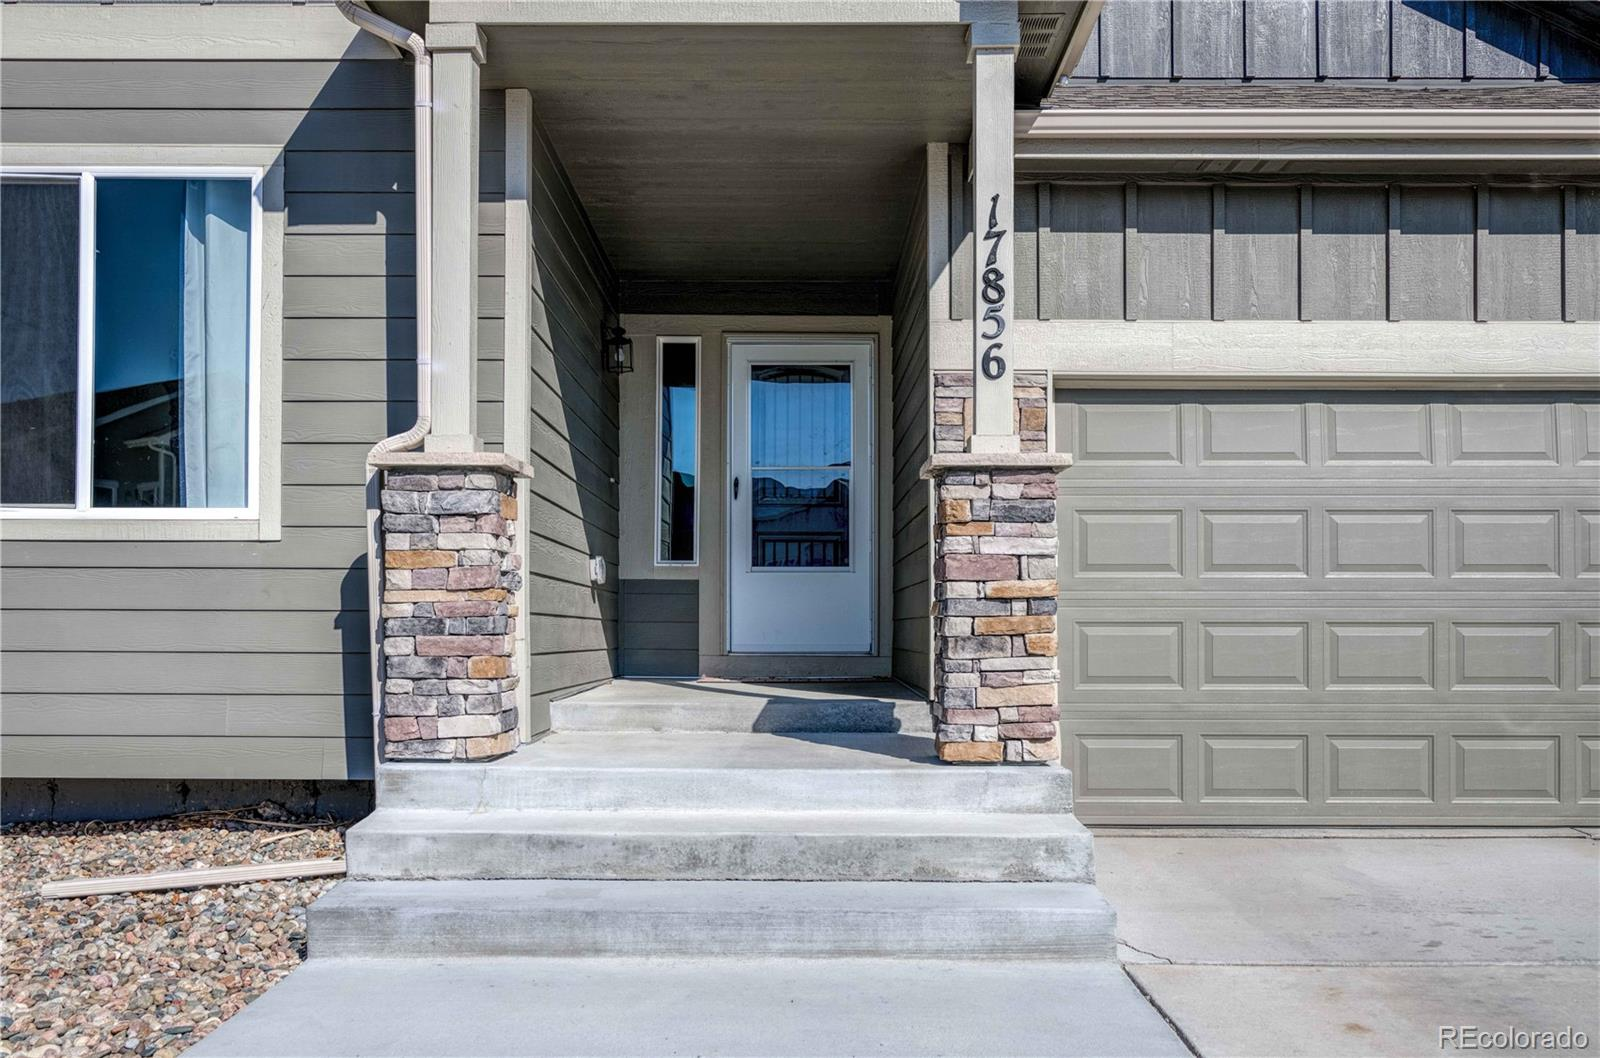 MLS# 5849980 - 3 - 17856 17856 Way, Monument, CO 80132